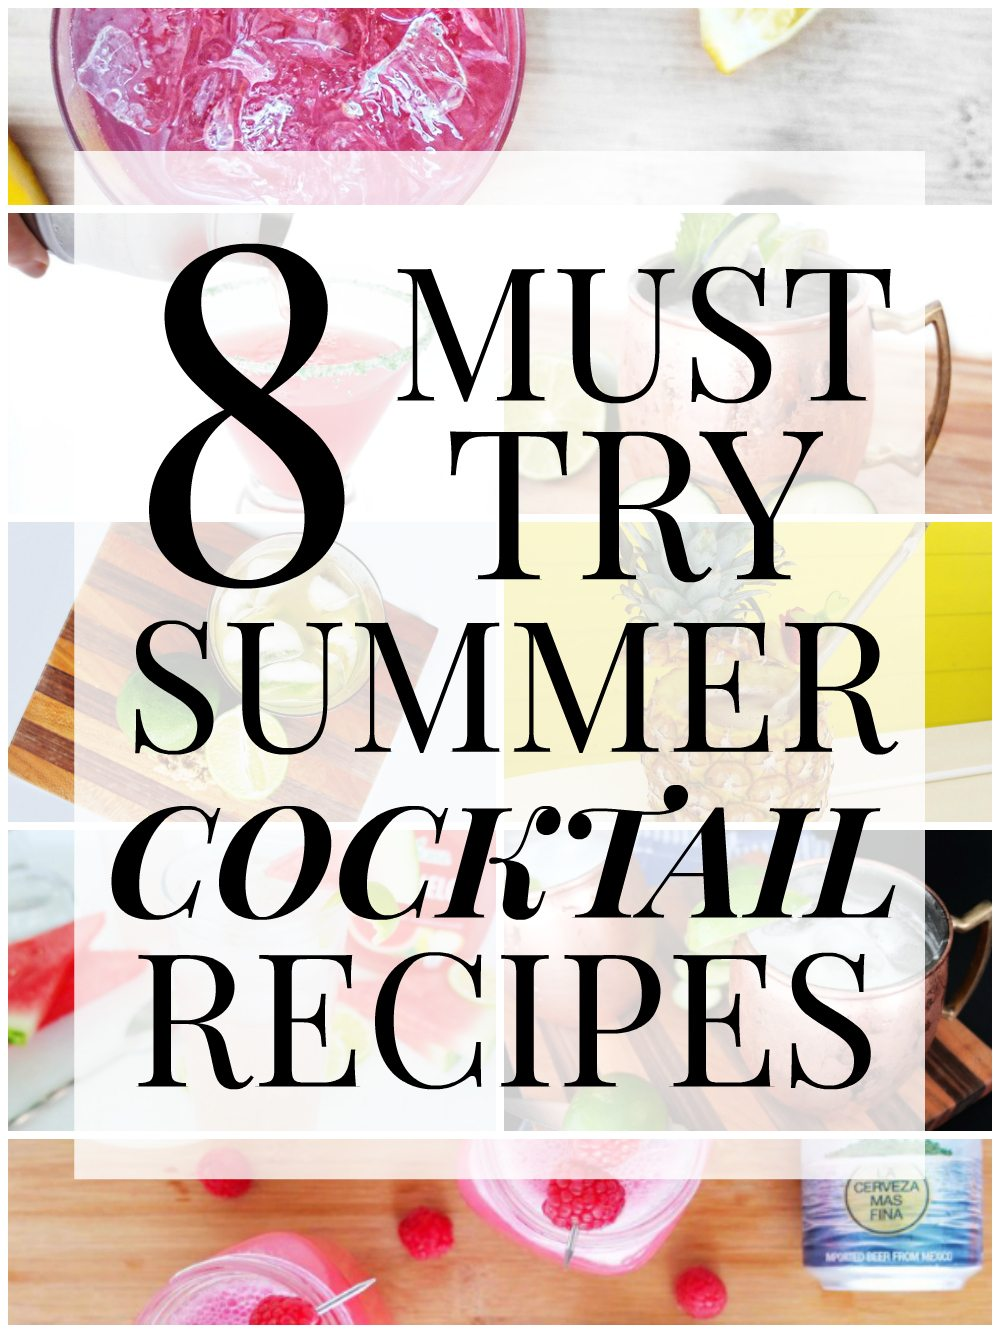 A roundup of summer cocktail recipes that are delicious and easy from Elle Talk. Included Pineapple Rum Swizzle, Coconut Moscow Mules, Juleps, Watermelon Gin Rickey, and more delicious summer flavors. // www.elletalk.com